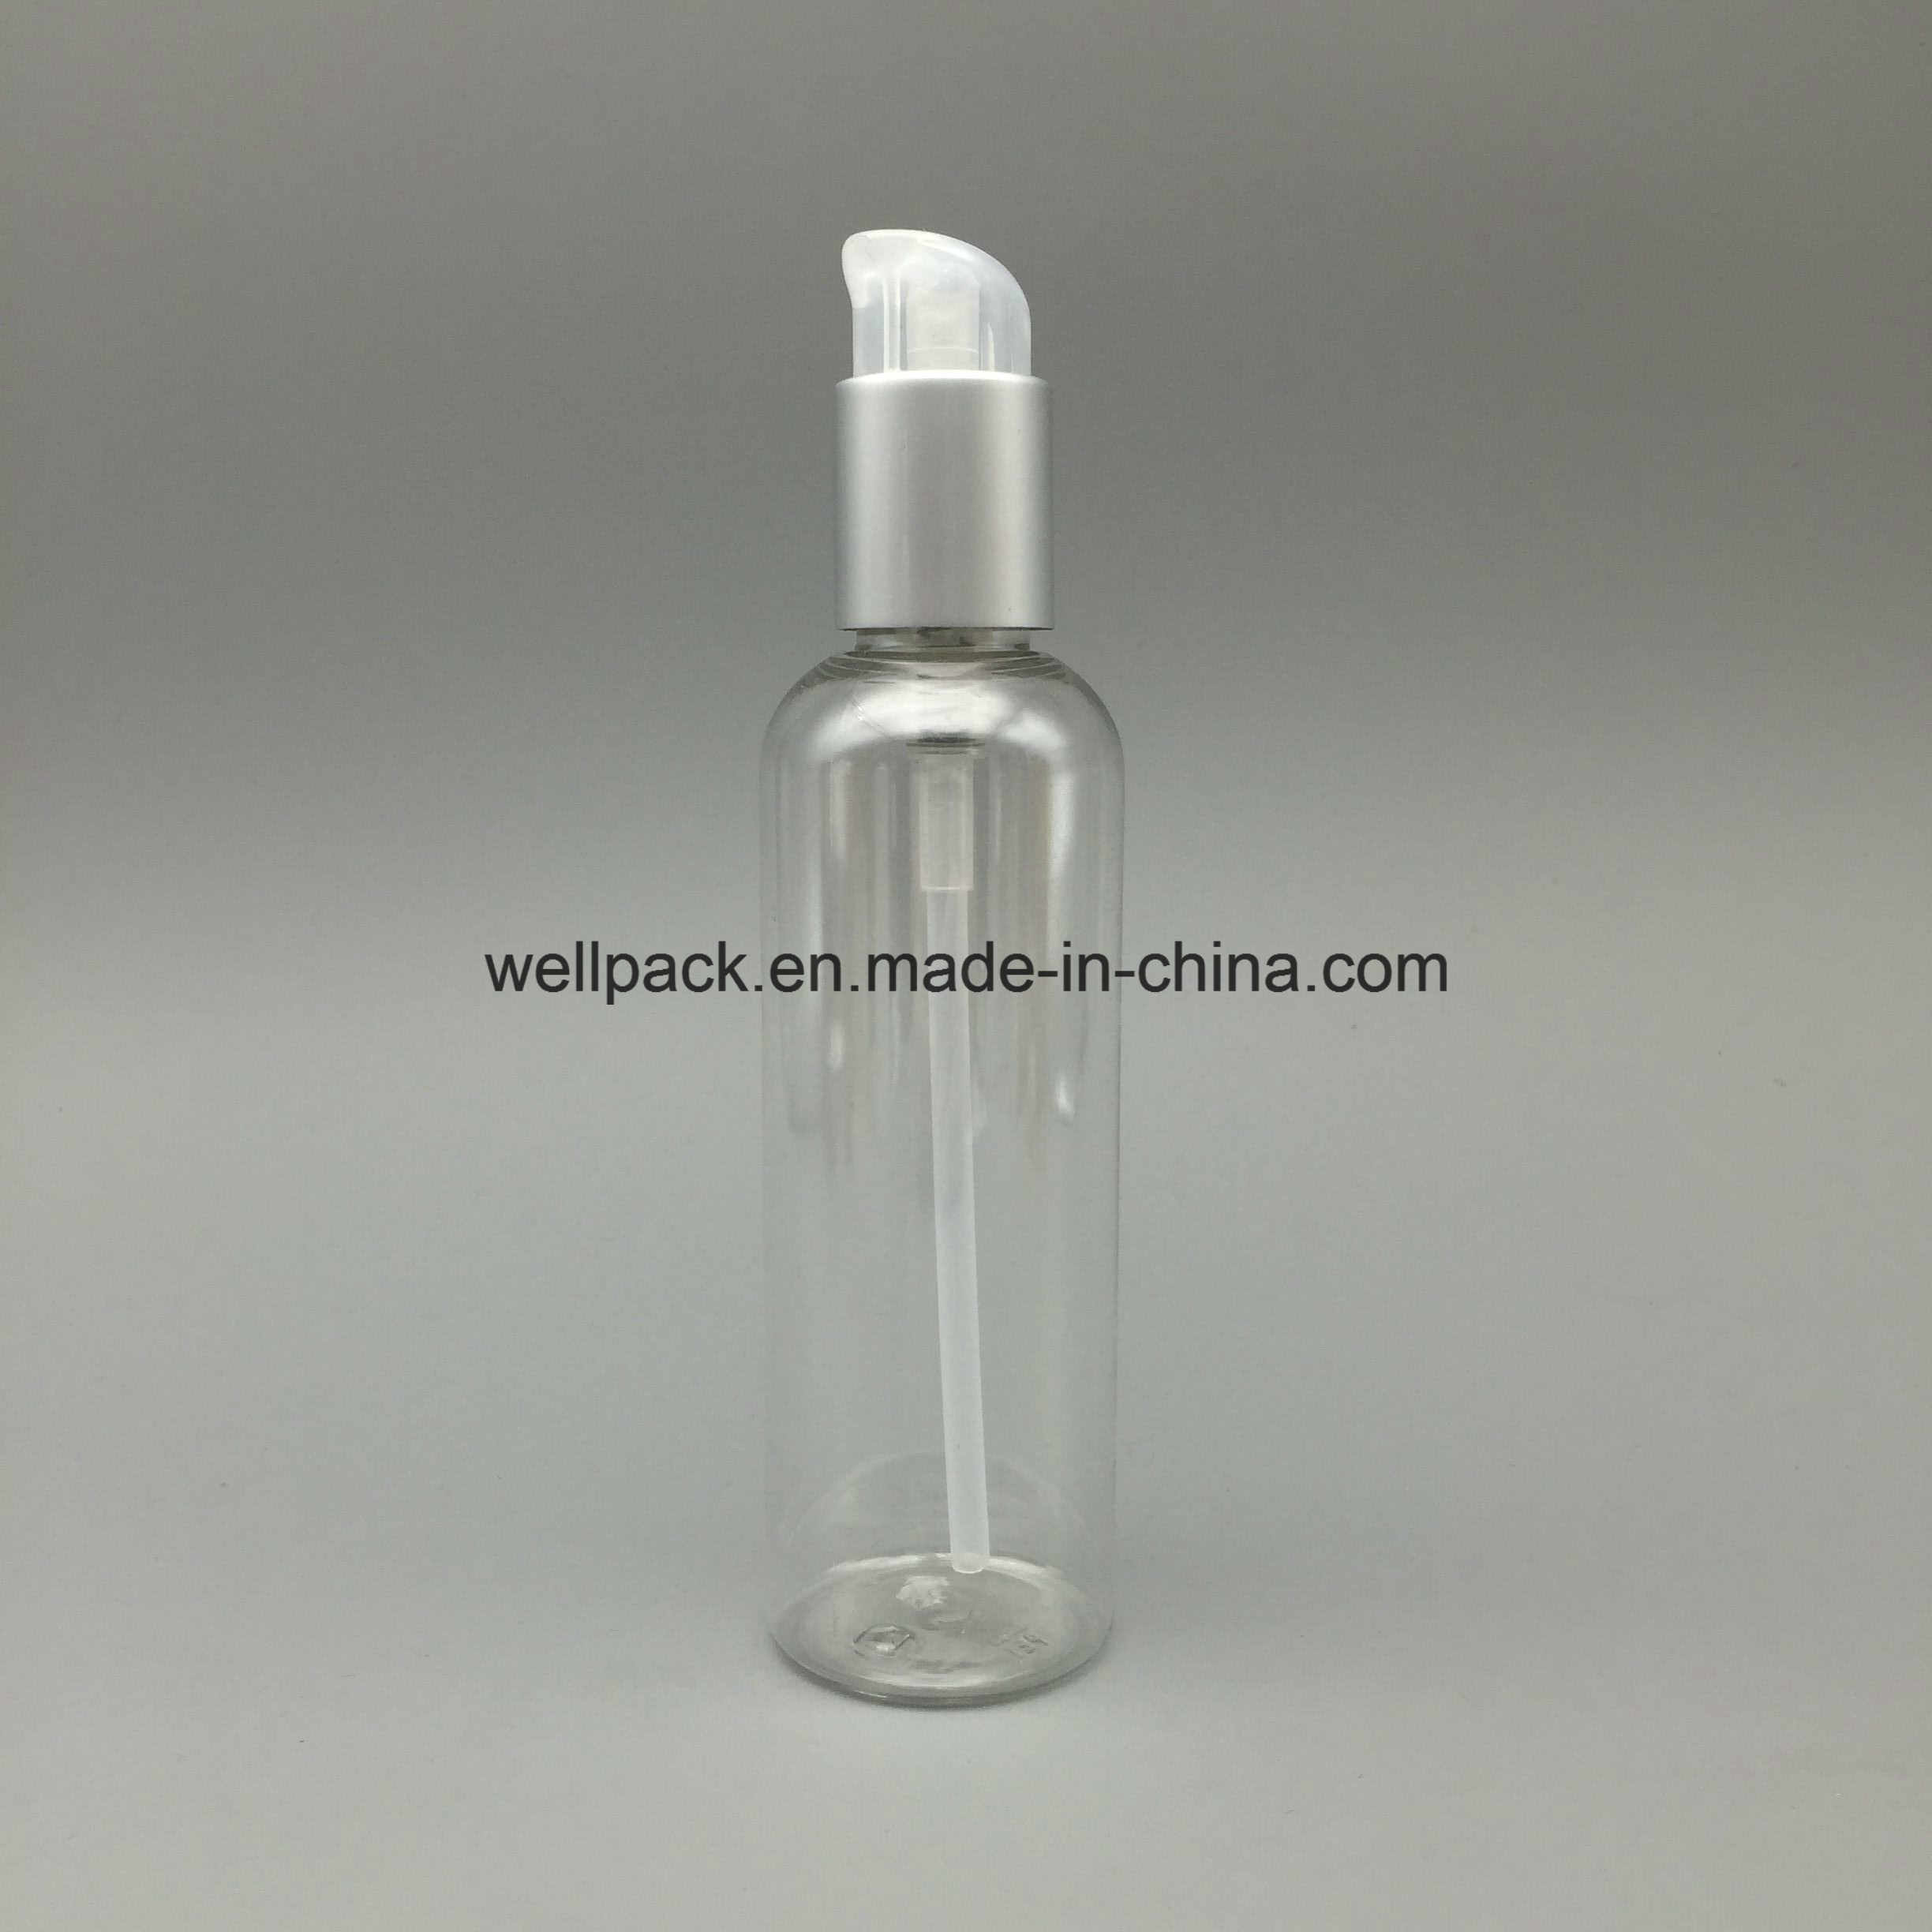 200ml Clear Plastic Pet Bottle with Mist Sprayer